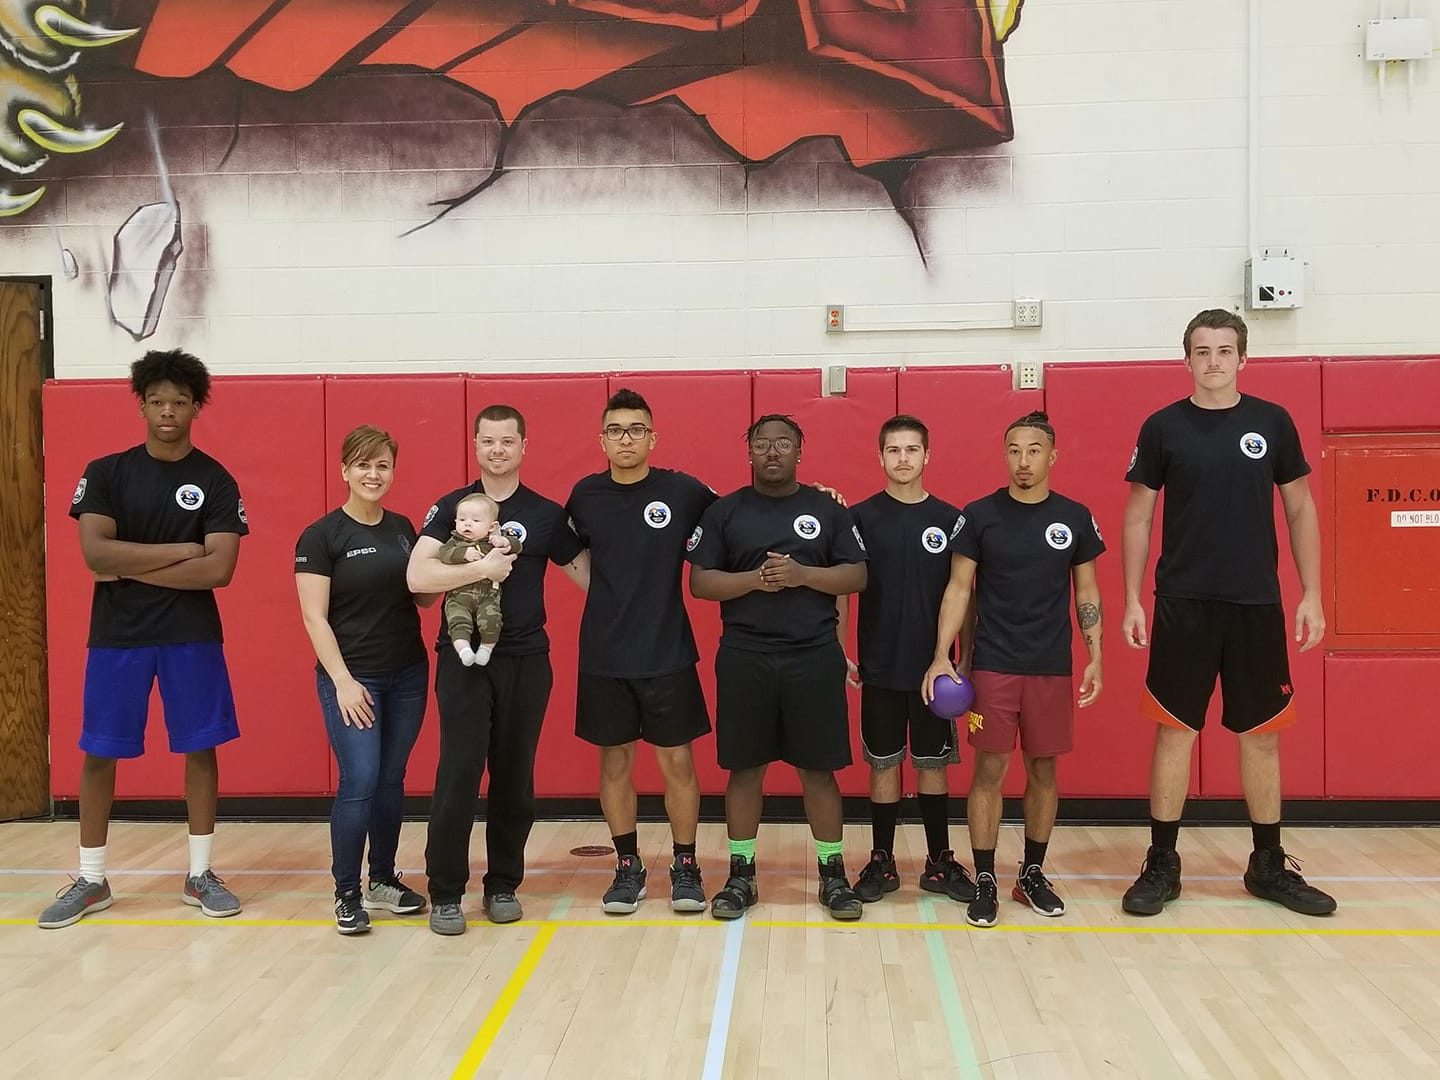 Sierra Places 2nd in El Paso County Sheriffs Dodgeball Tournament!